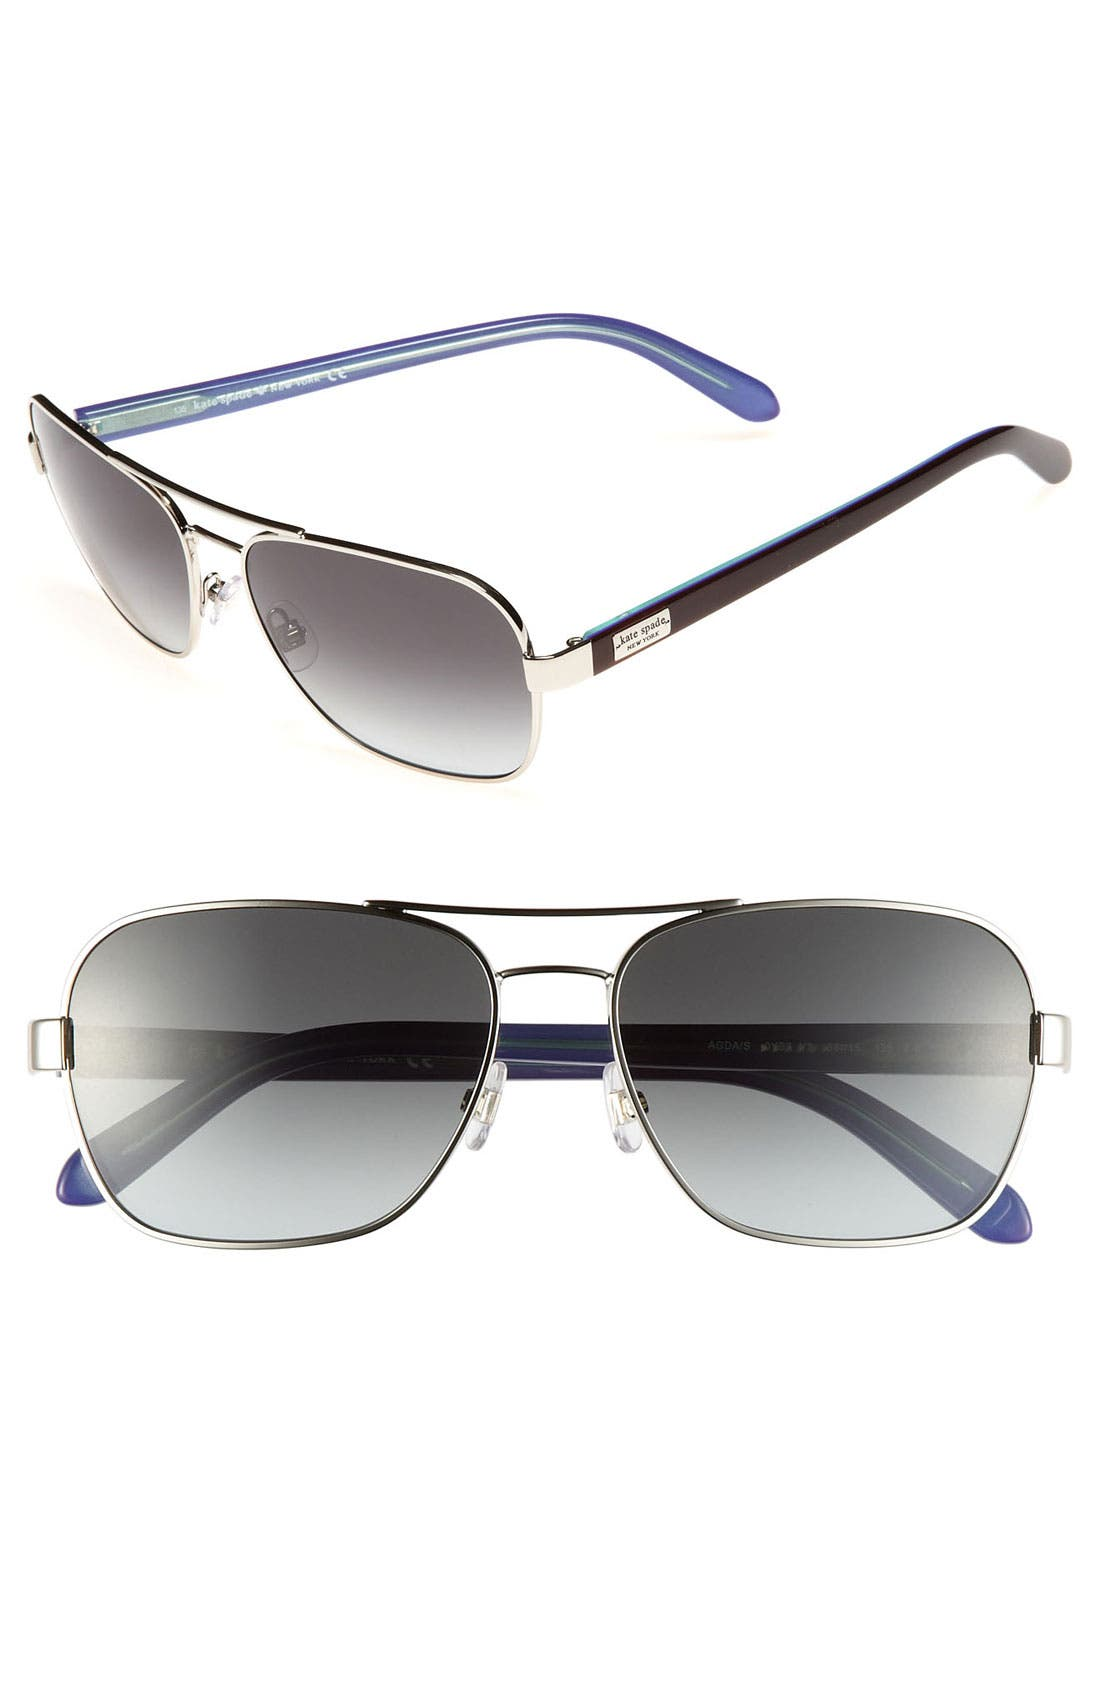 Main Image - kate spade new york 'agda' 56mm navigator sunglasses